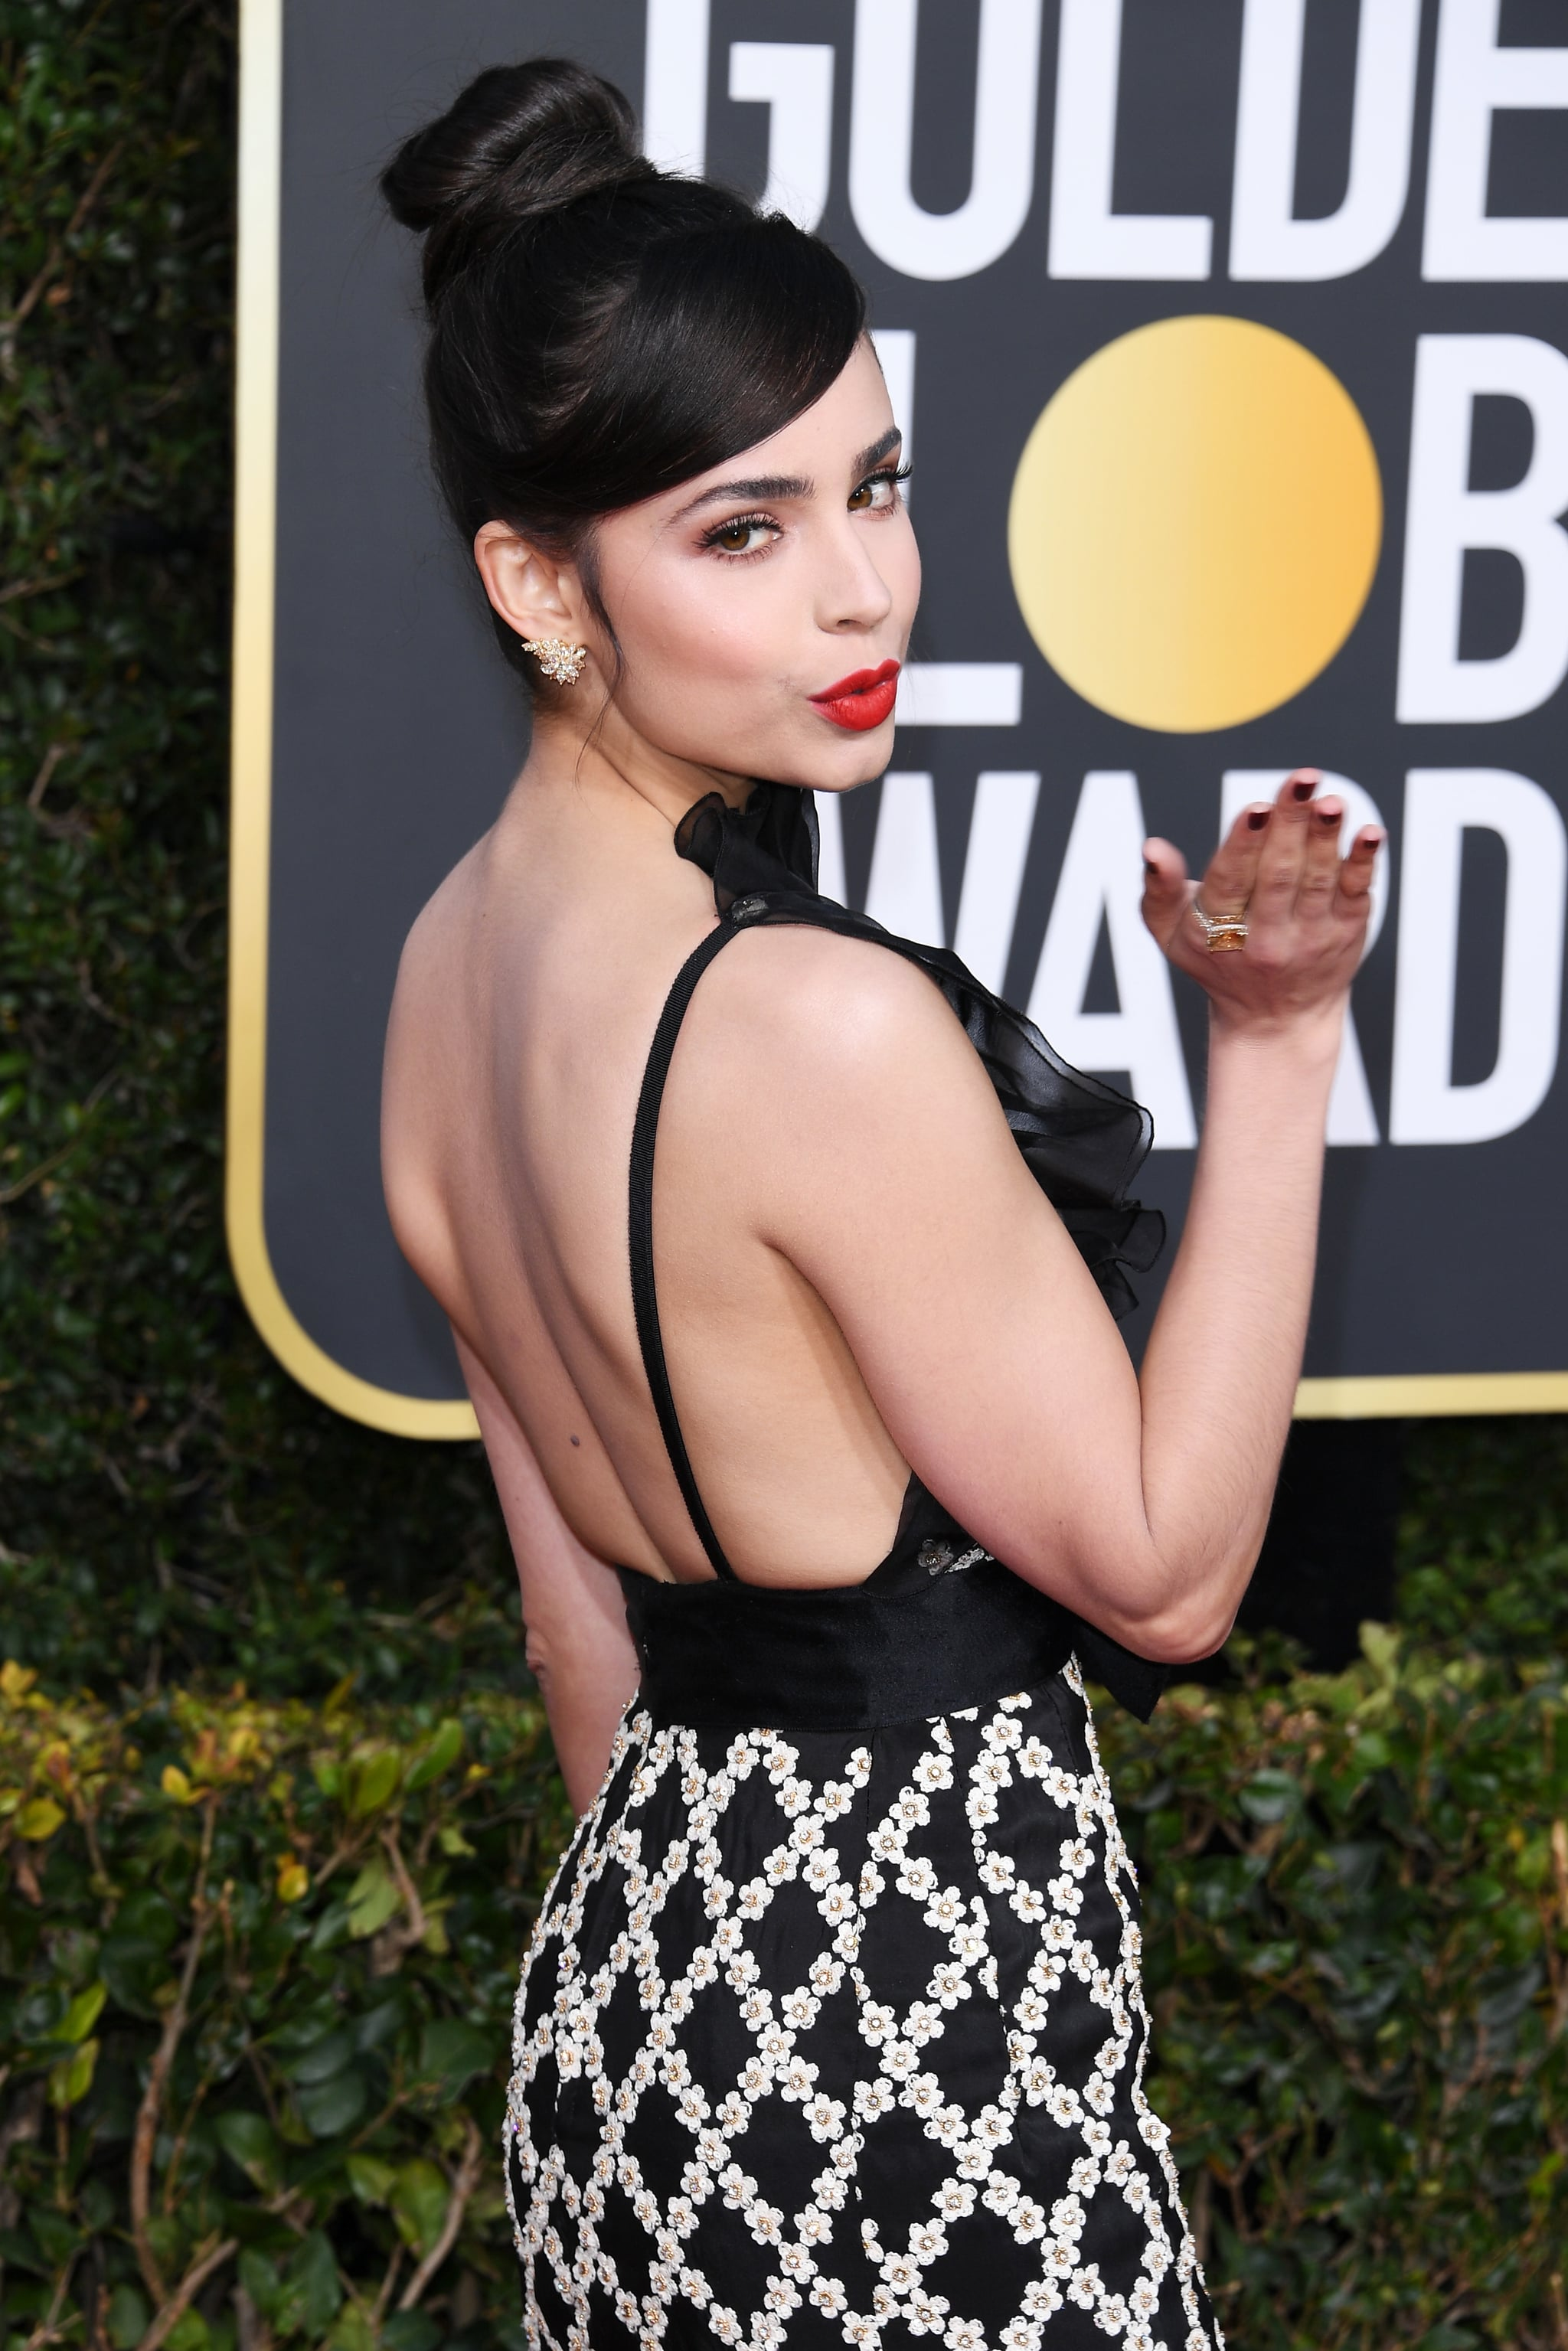 BEVERLY HILLS, CA - JANUARY 06:  Sofia Carson attends the 76th Annual Golden Globe Awards at The Beverly Hilton Hotel on January 6, 2019 in Beverly Hills, California.  (Photo by Daniele Venturelli/WireImage)